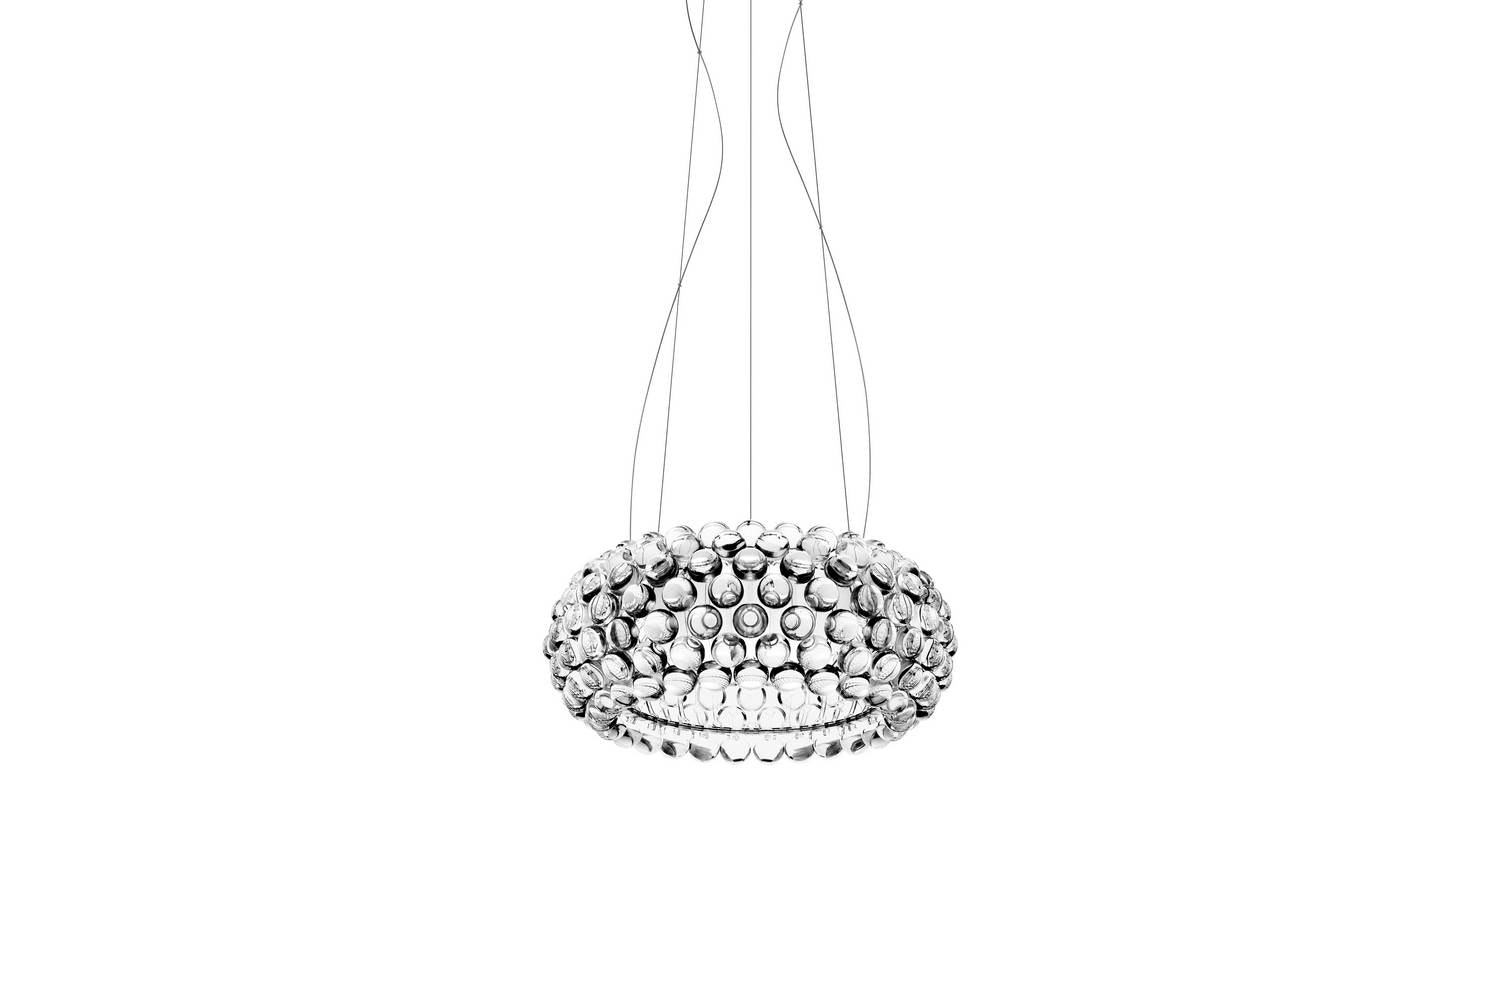 Caboche Media LED Suspension Lamp by Patricia Urquiola & Eliana Gerotto for Foscarini